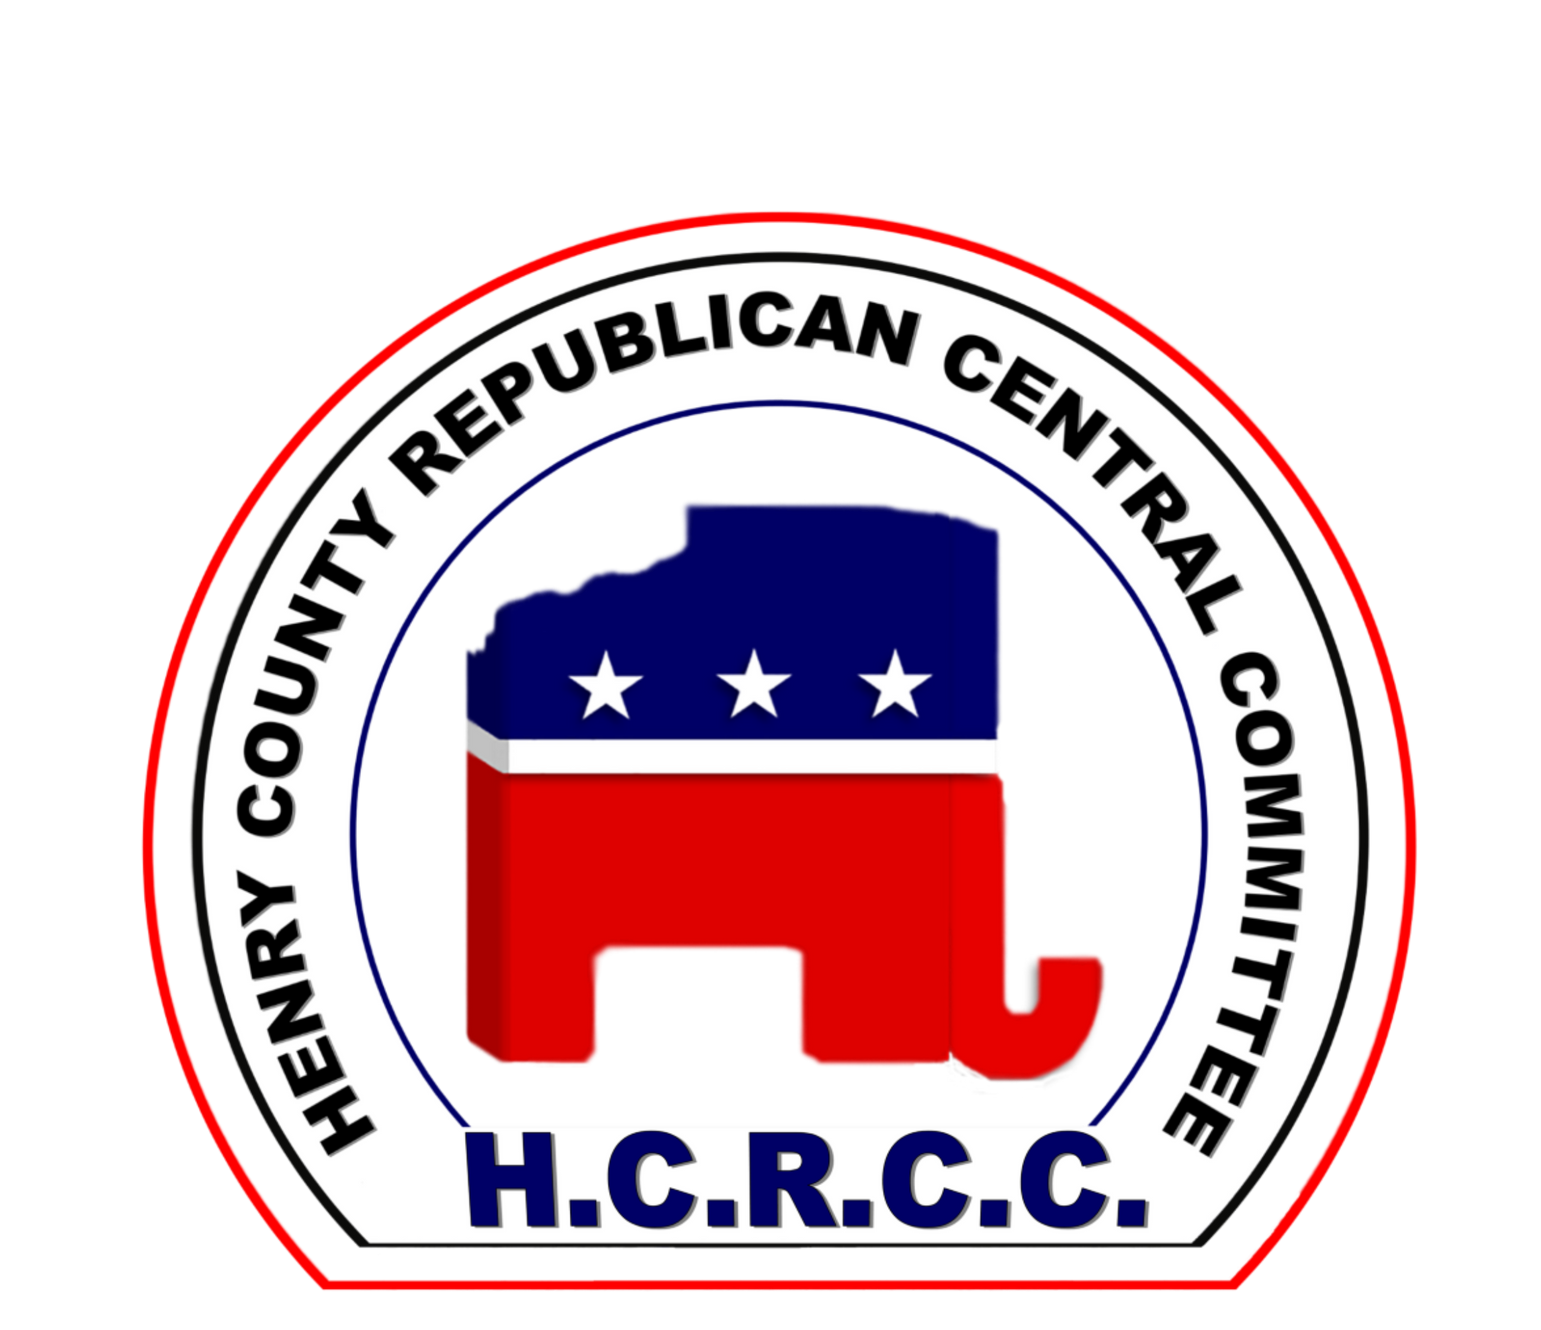 Henry County Illinois | Republicans | GOP